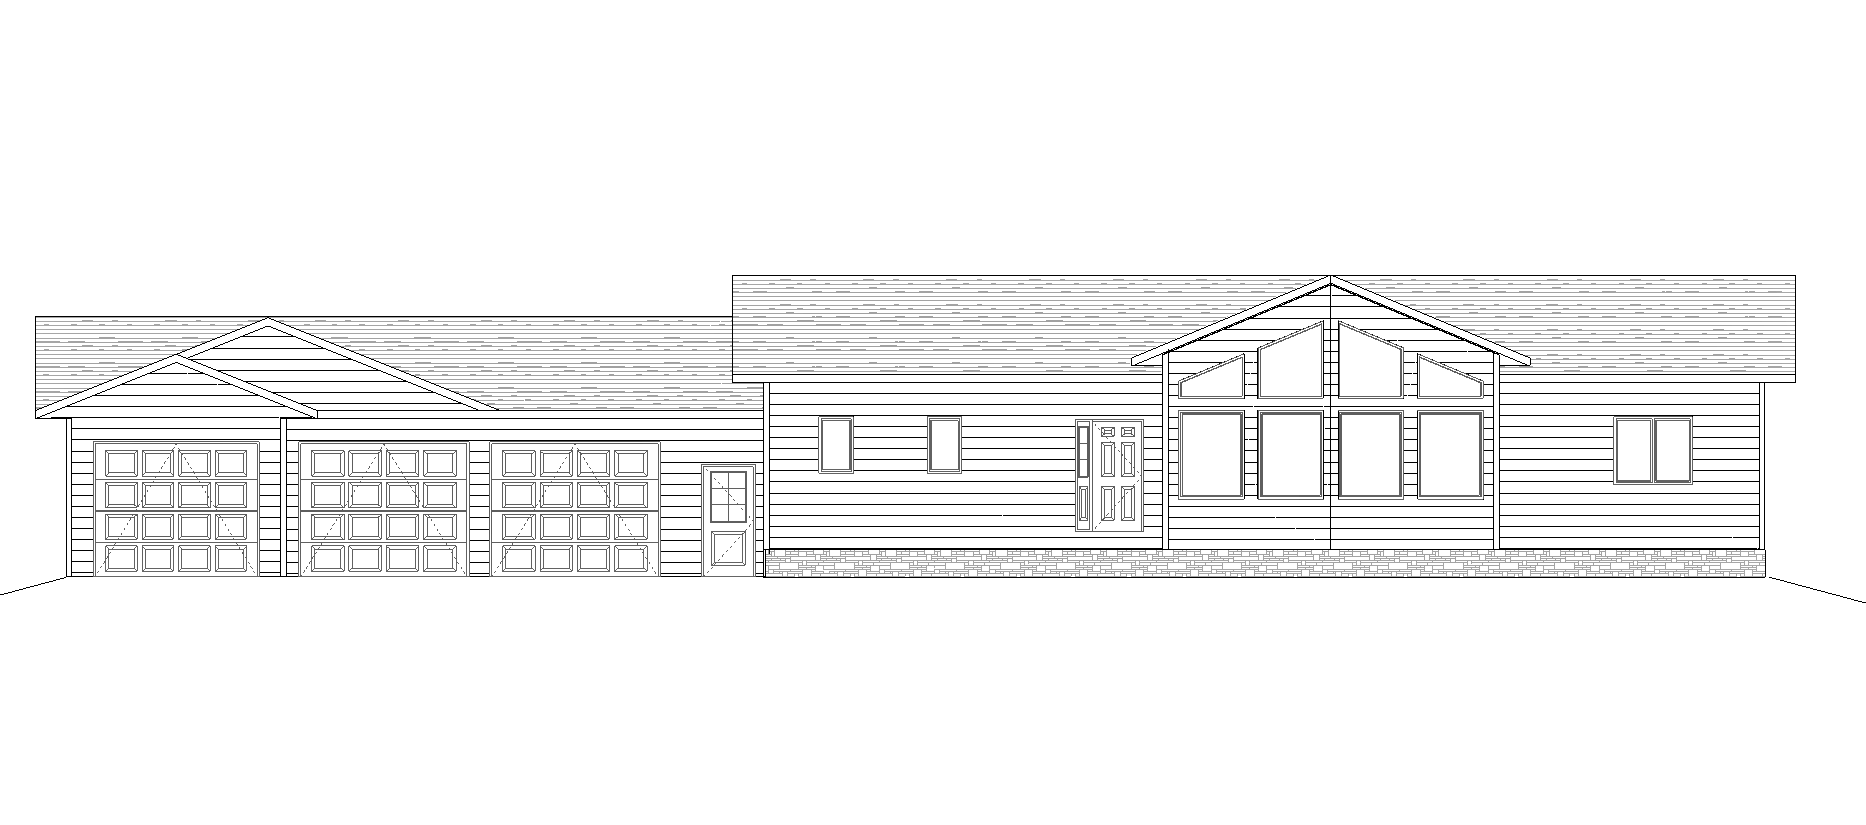 Penner Homes Elevation Map Id: 404